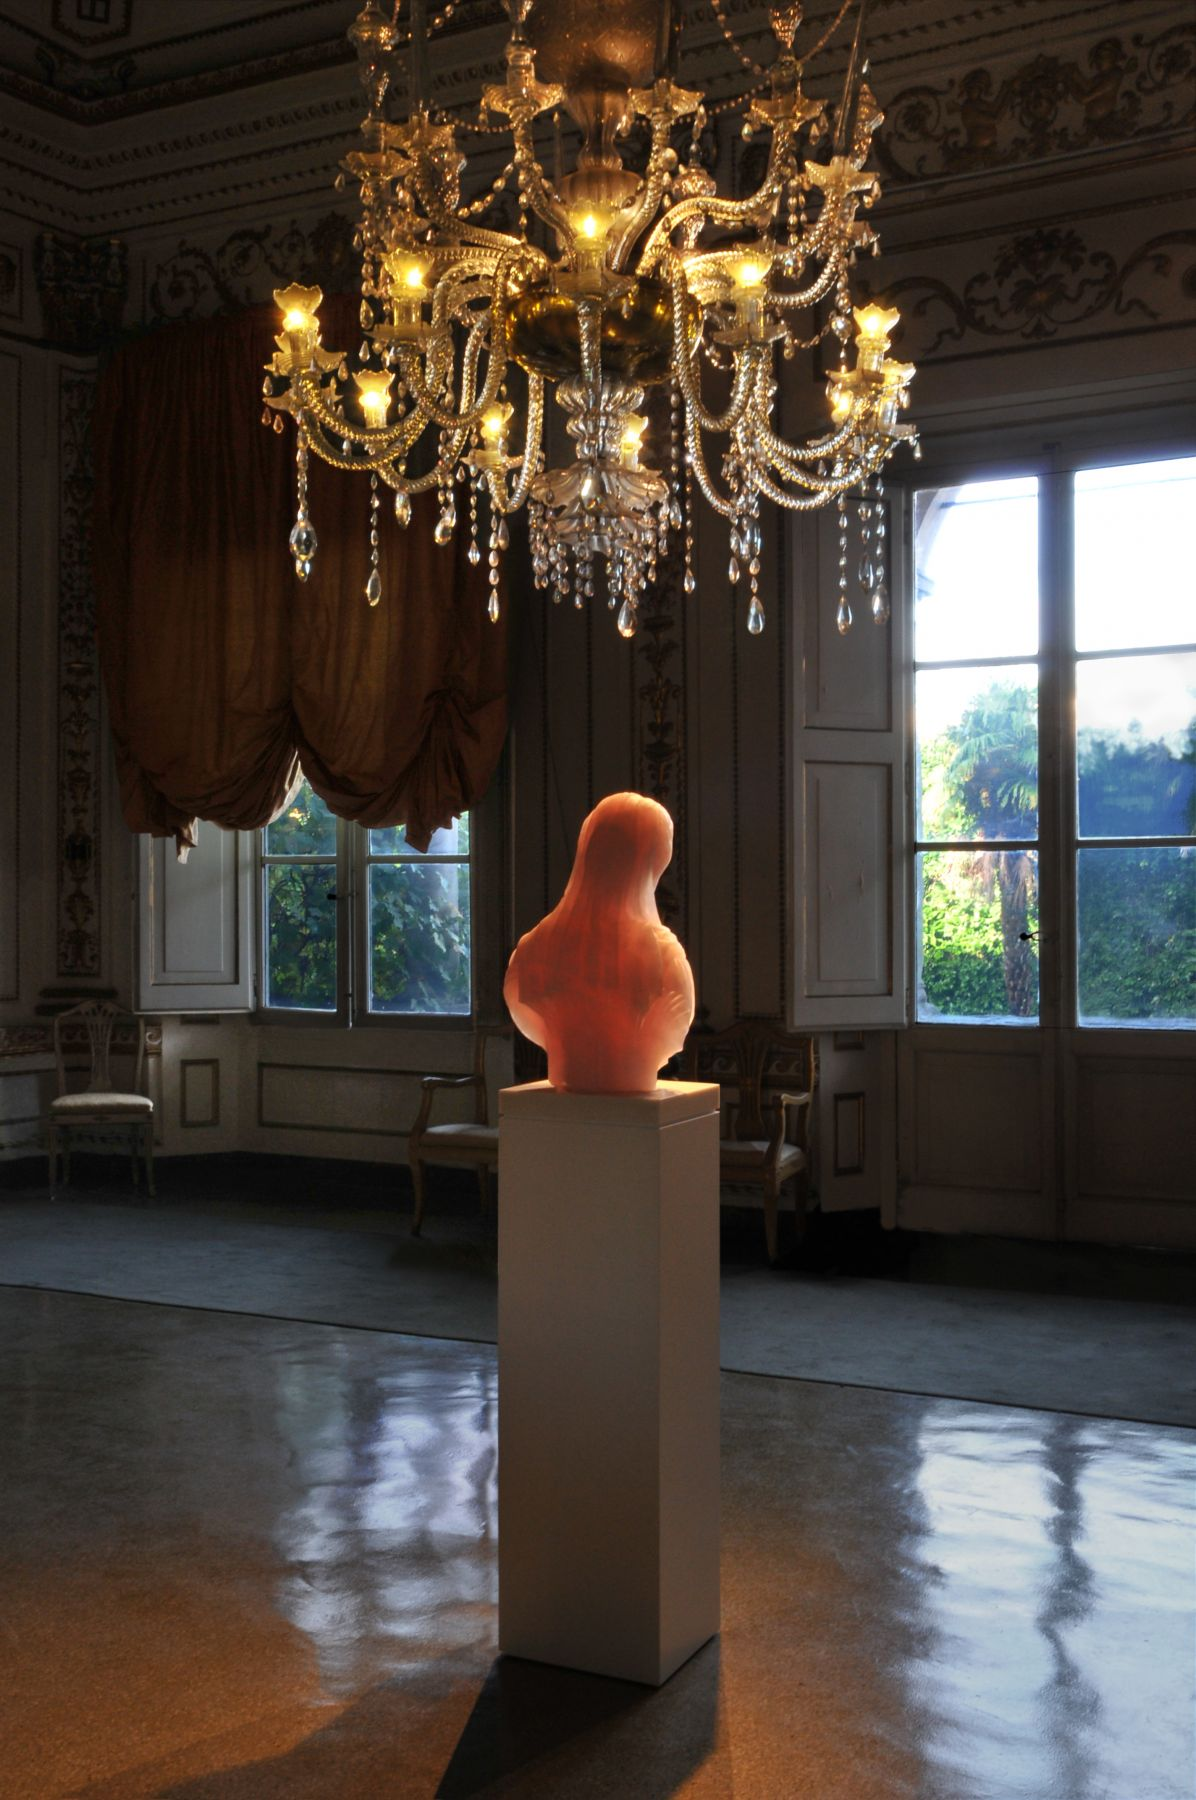 BARRY X BALL_Purity in Iranian Translucent Pink Onyx_The New Gallery--Palazzo Mansi, Lucca